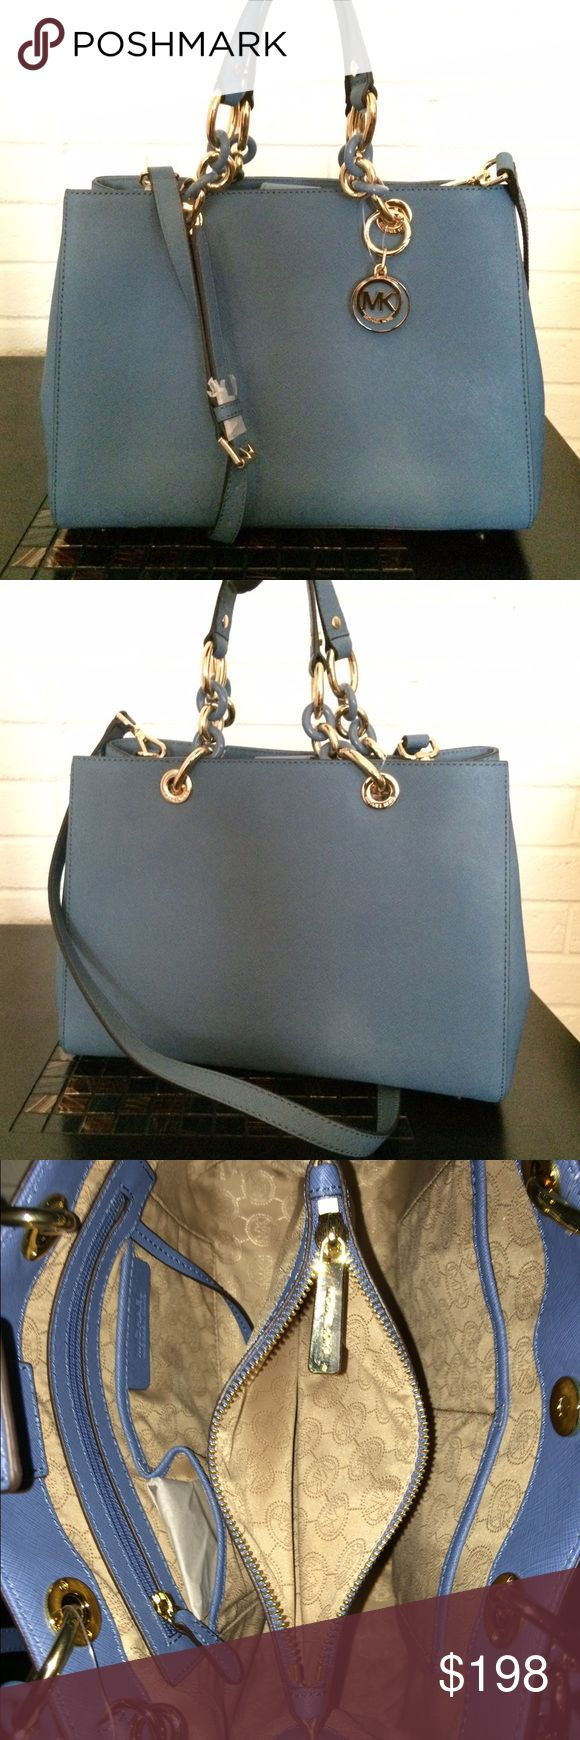 Michael kors Sky blue Cynthia leather tote My prices are lower throughⓂ️ercari and through 🅿️🅿️ Bags are 100% authentic and brand new with tags guaranteed!! Michael Kors Sky blue Cynthia medium satchel tote. Stored in pet free and smoke free home. Serious buyers only please and only comment if it's about purchasing. I will not respond to lowball offers.  customers know my background. Thank you   Measurements medium Michael Kors Bags